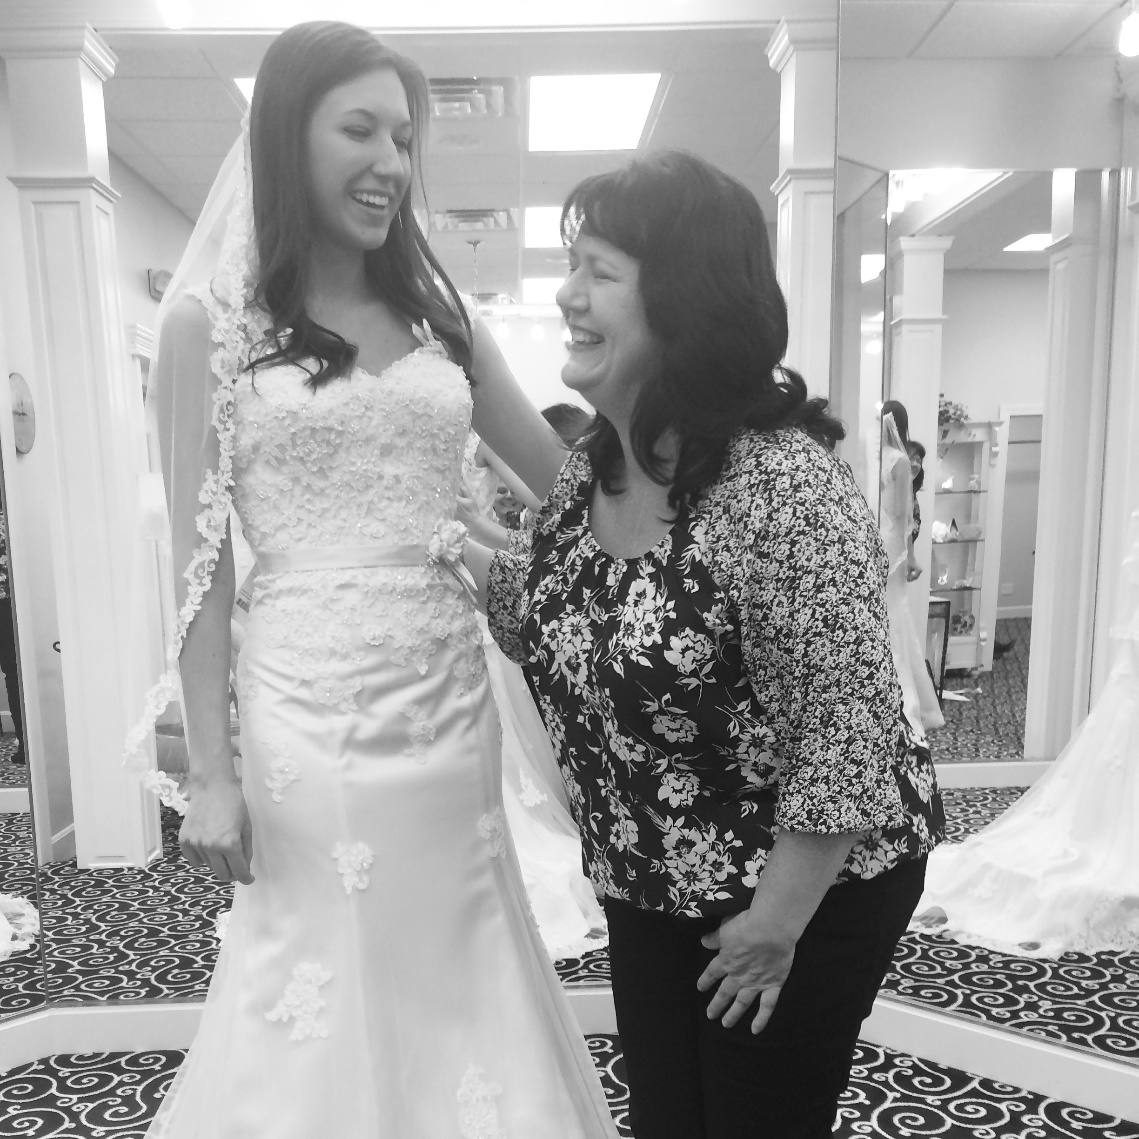 This is my mom and I the day I bought my wedding dress. She was a great helper!